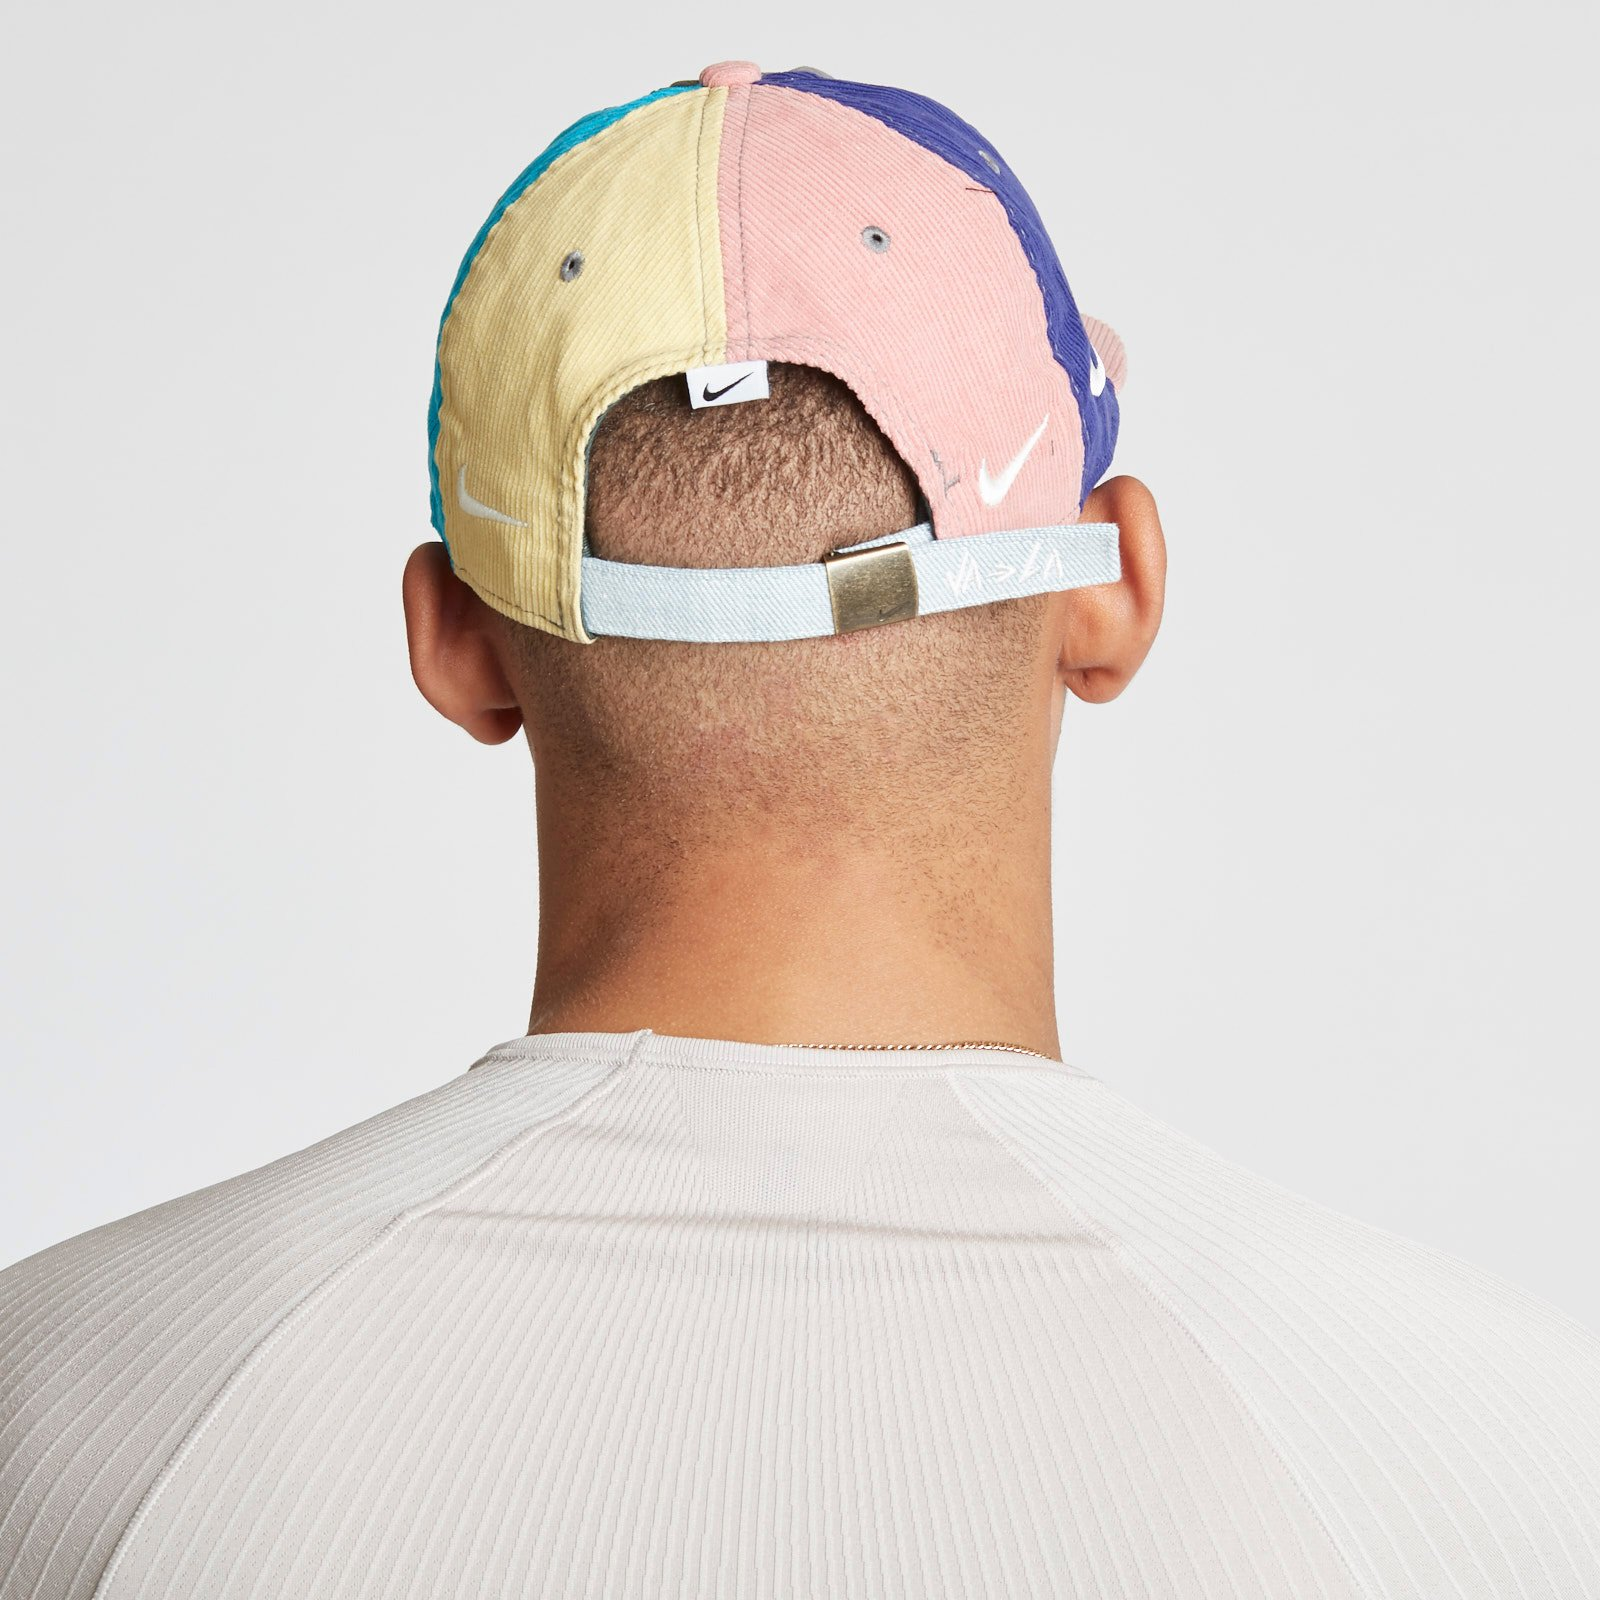 ... Nike Sportswear Cap Heritage 86 QS Sean Wotherspoon ... 54beda3d7e1